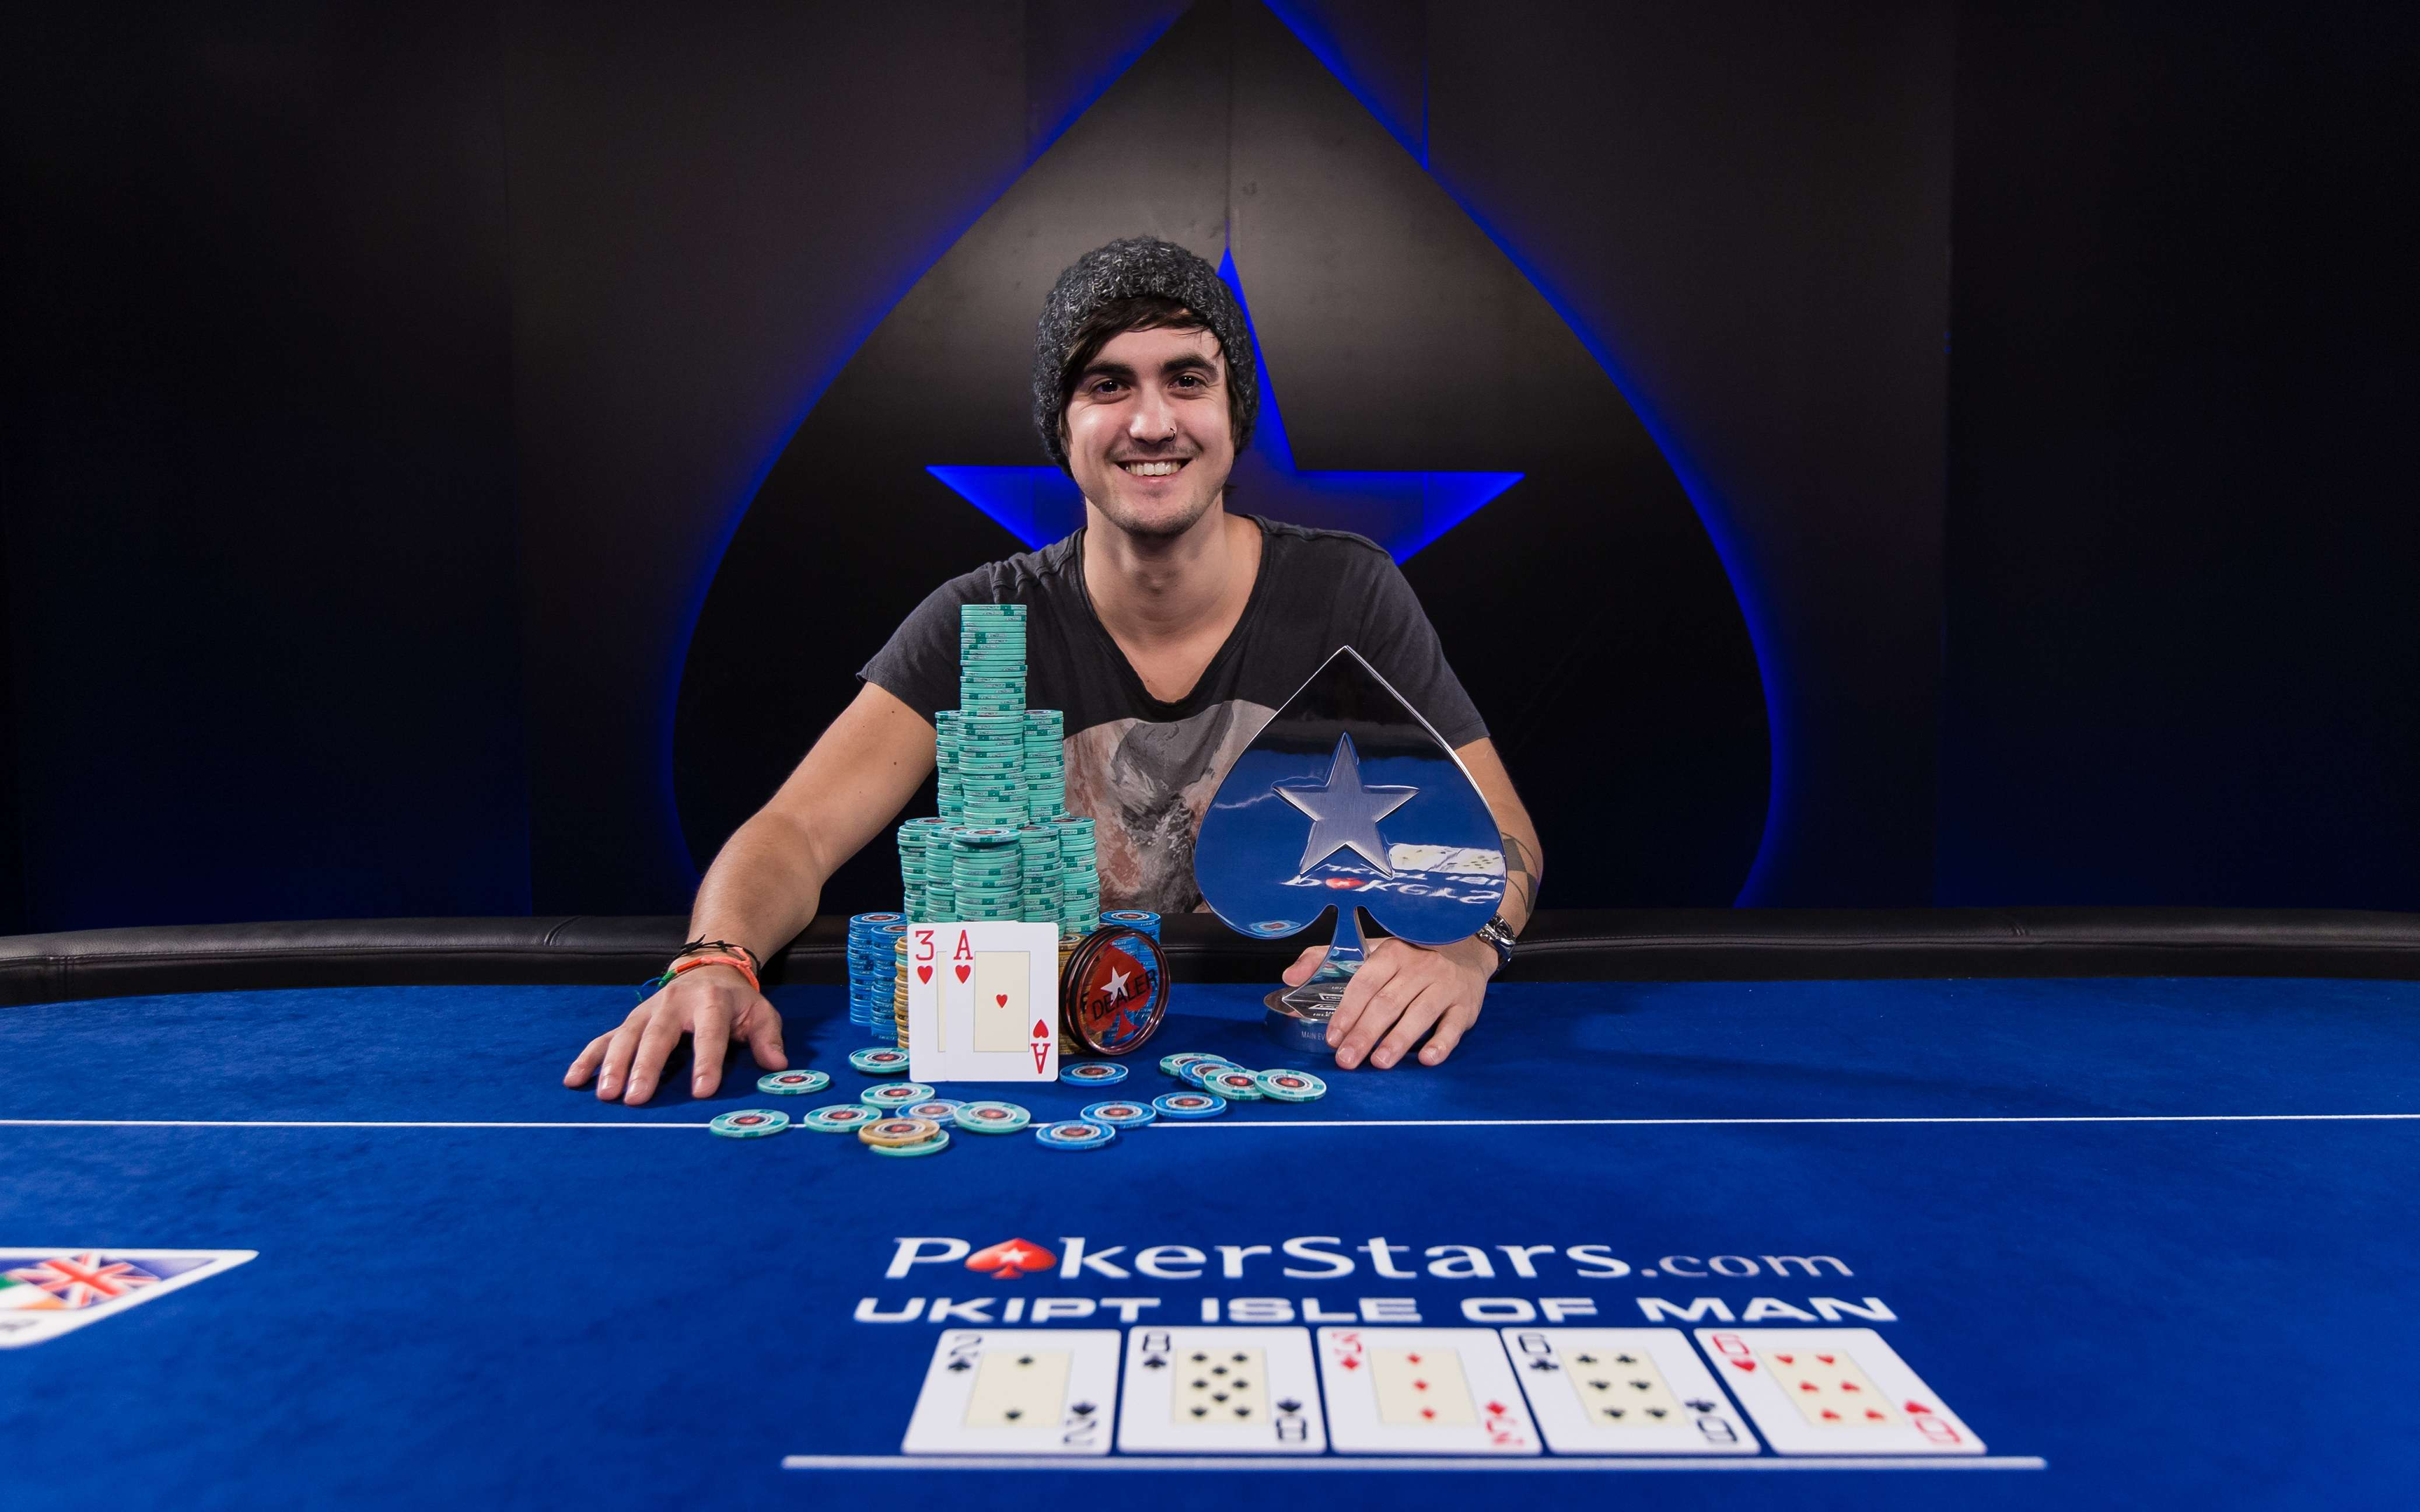 PokerStars UKIPT Series Comes Home to the Isle of Man